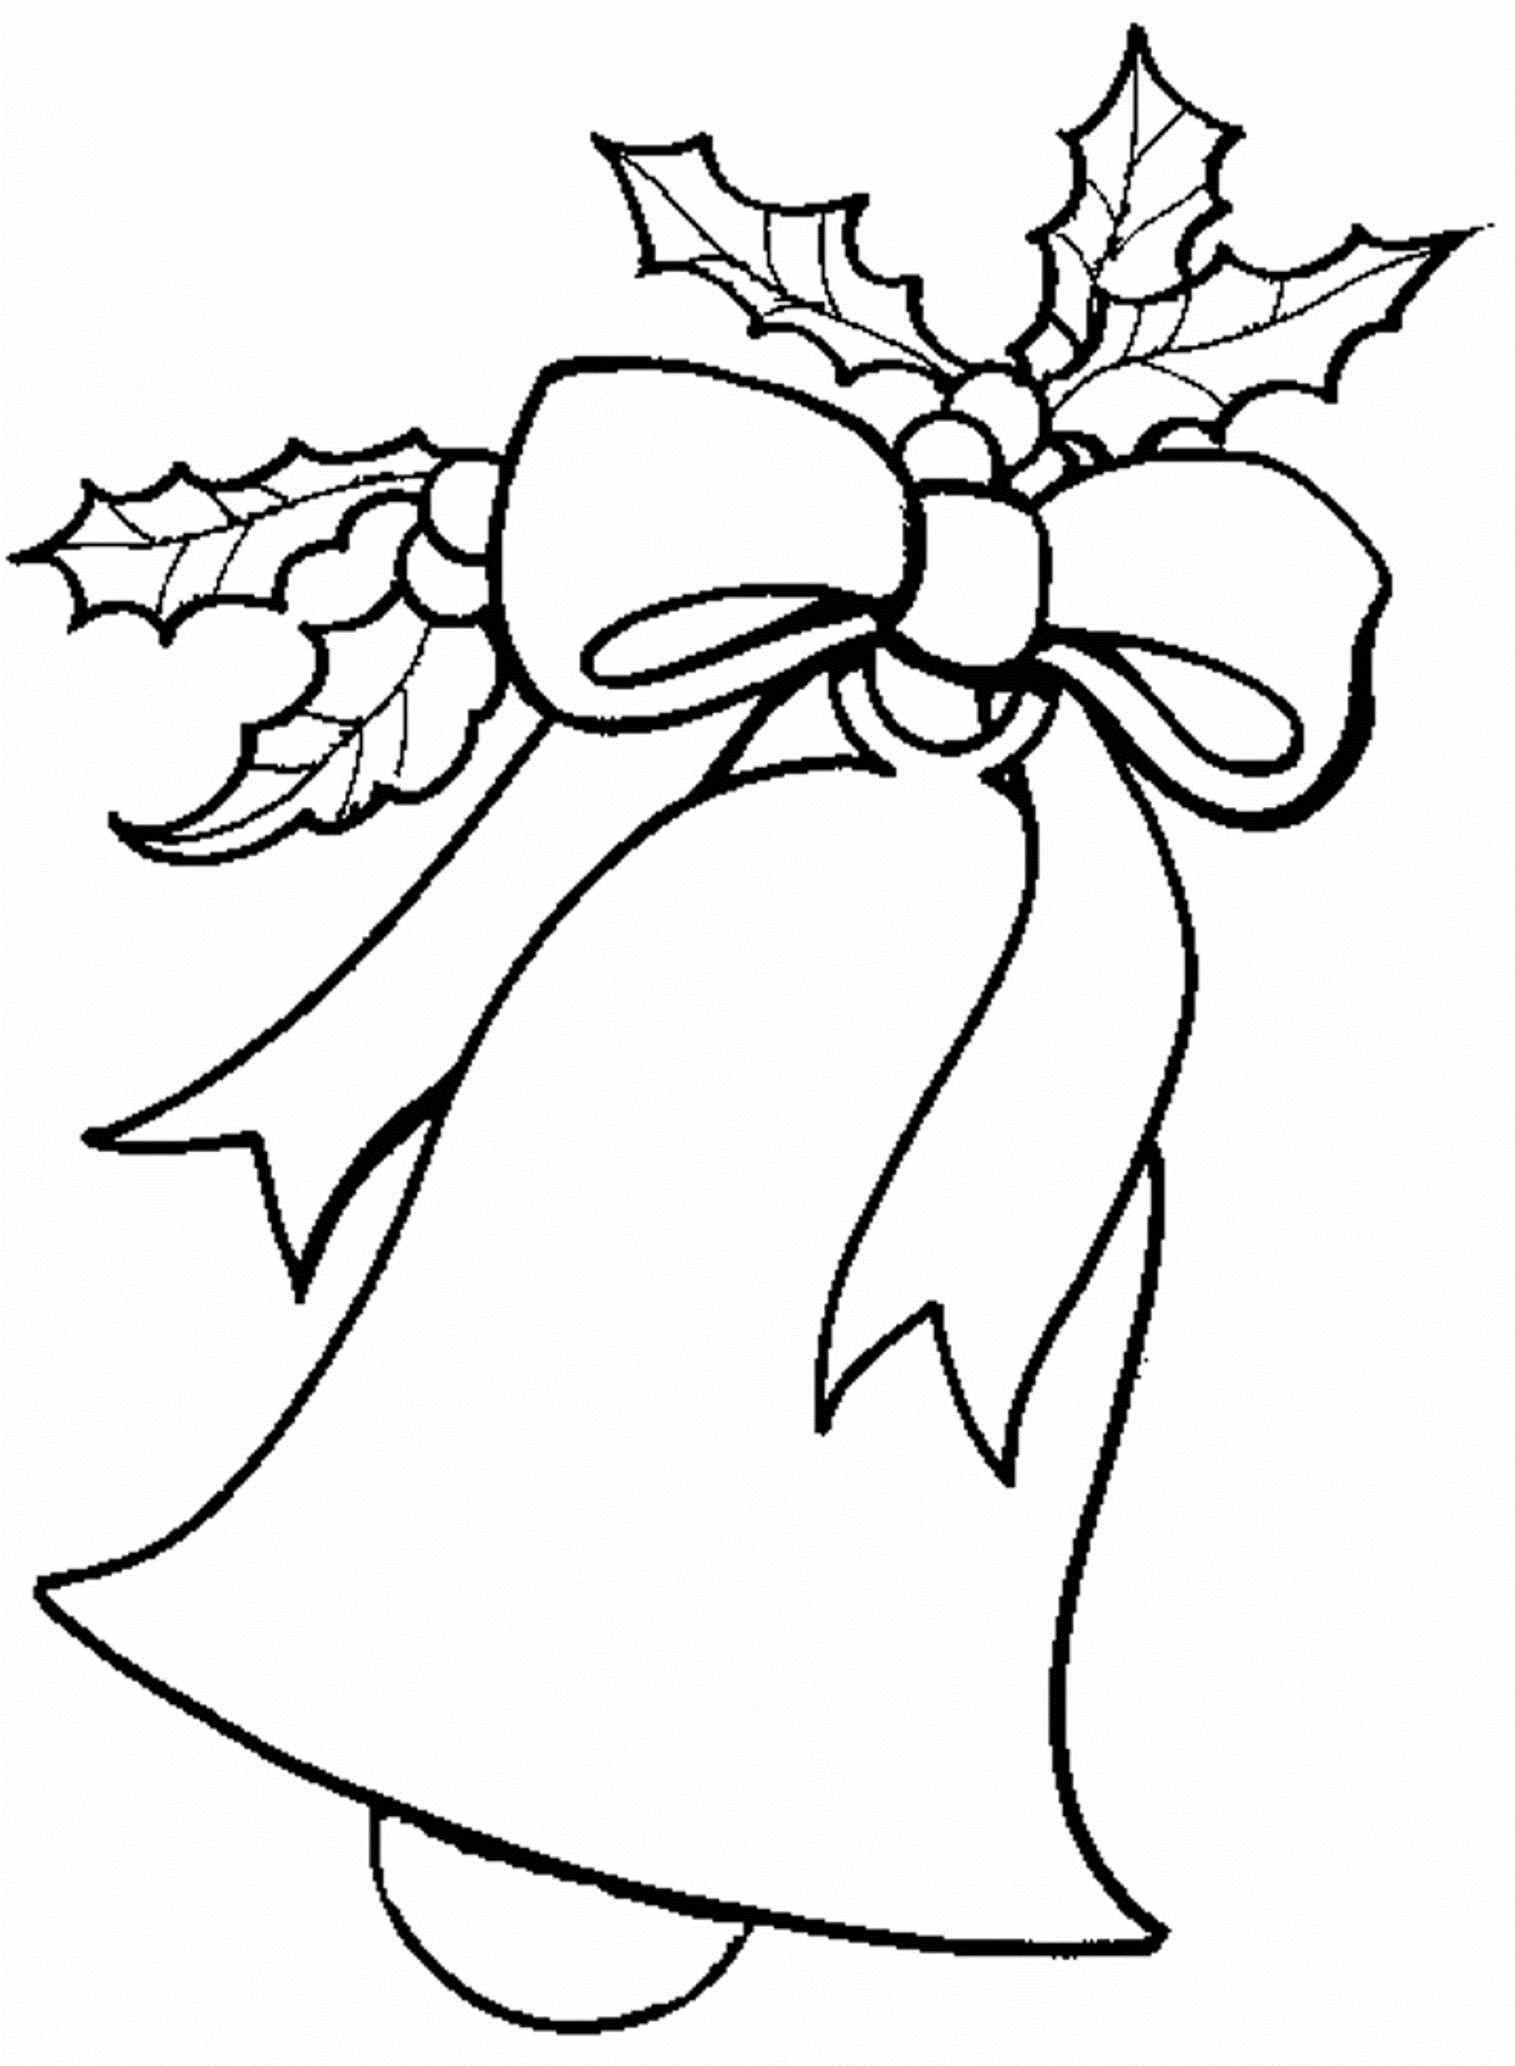 download free coloring pages for christmas bell or print free